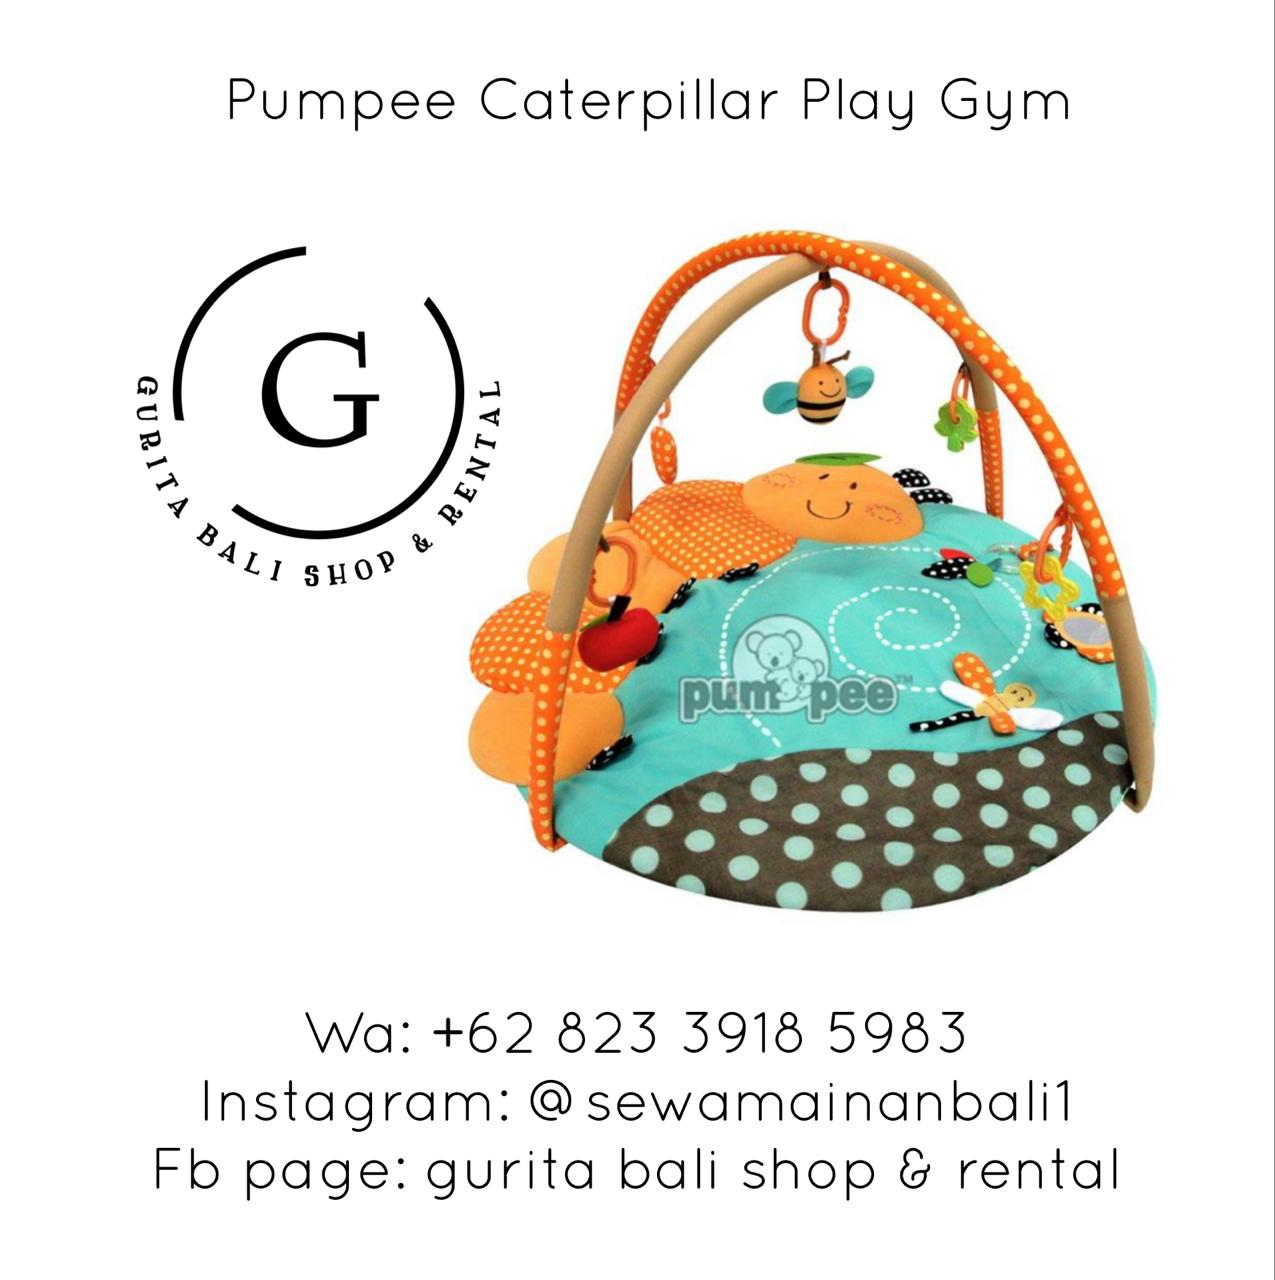 PUMPEE CATERPILLAR PLAY GYM